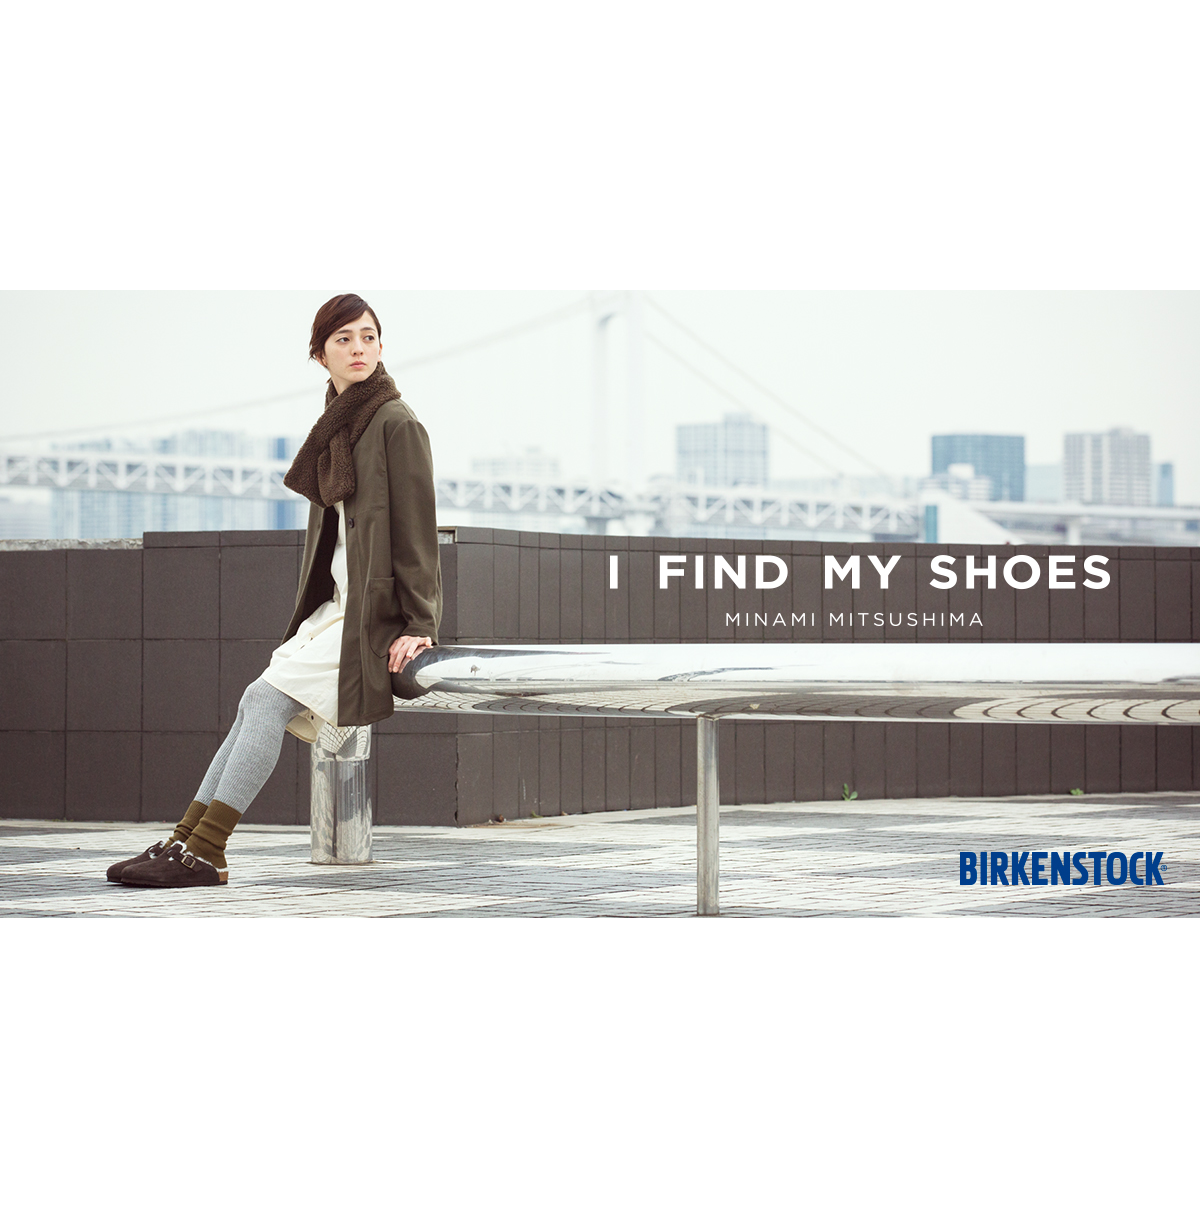 BIRKENSTOCK / I FIND MY SHOES4